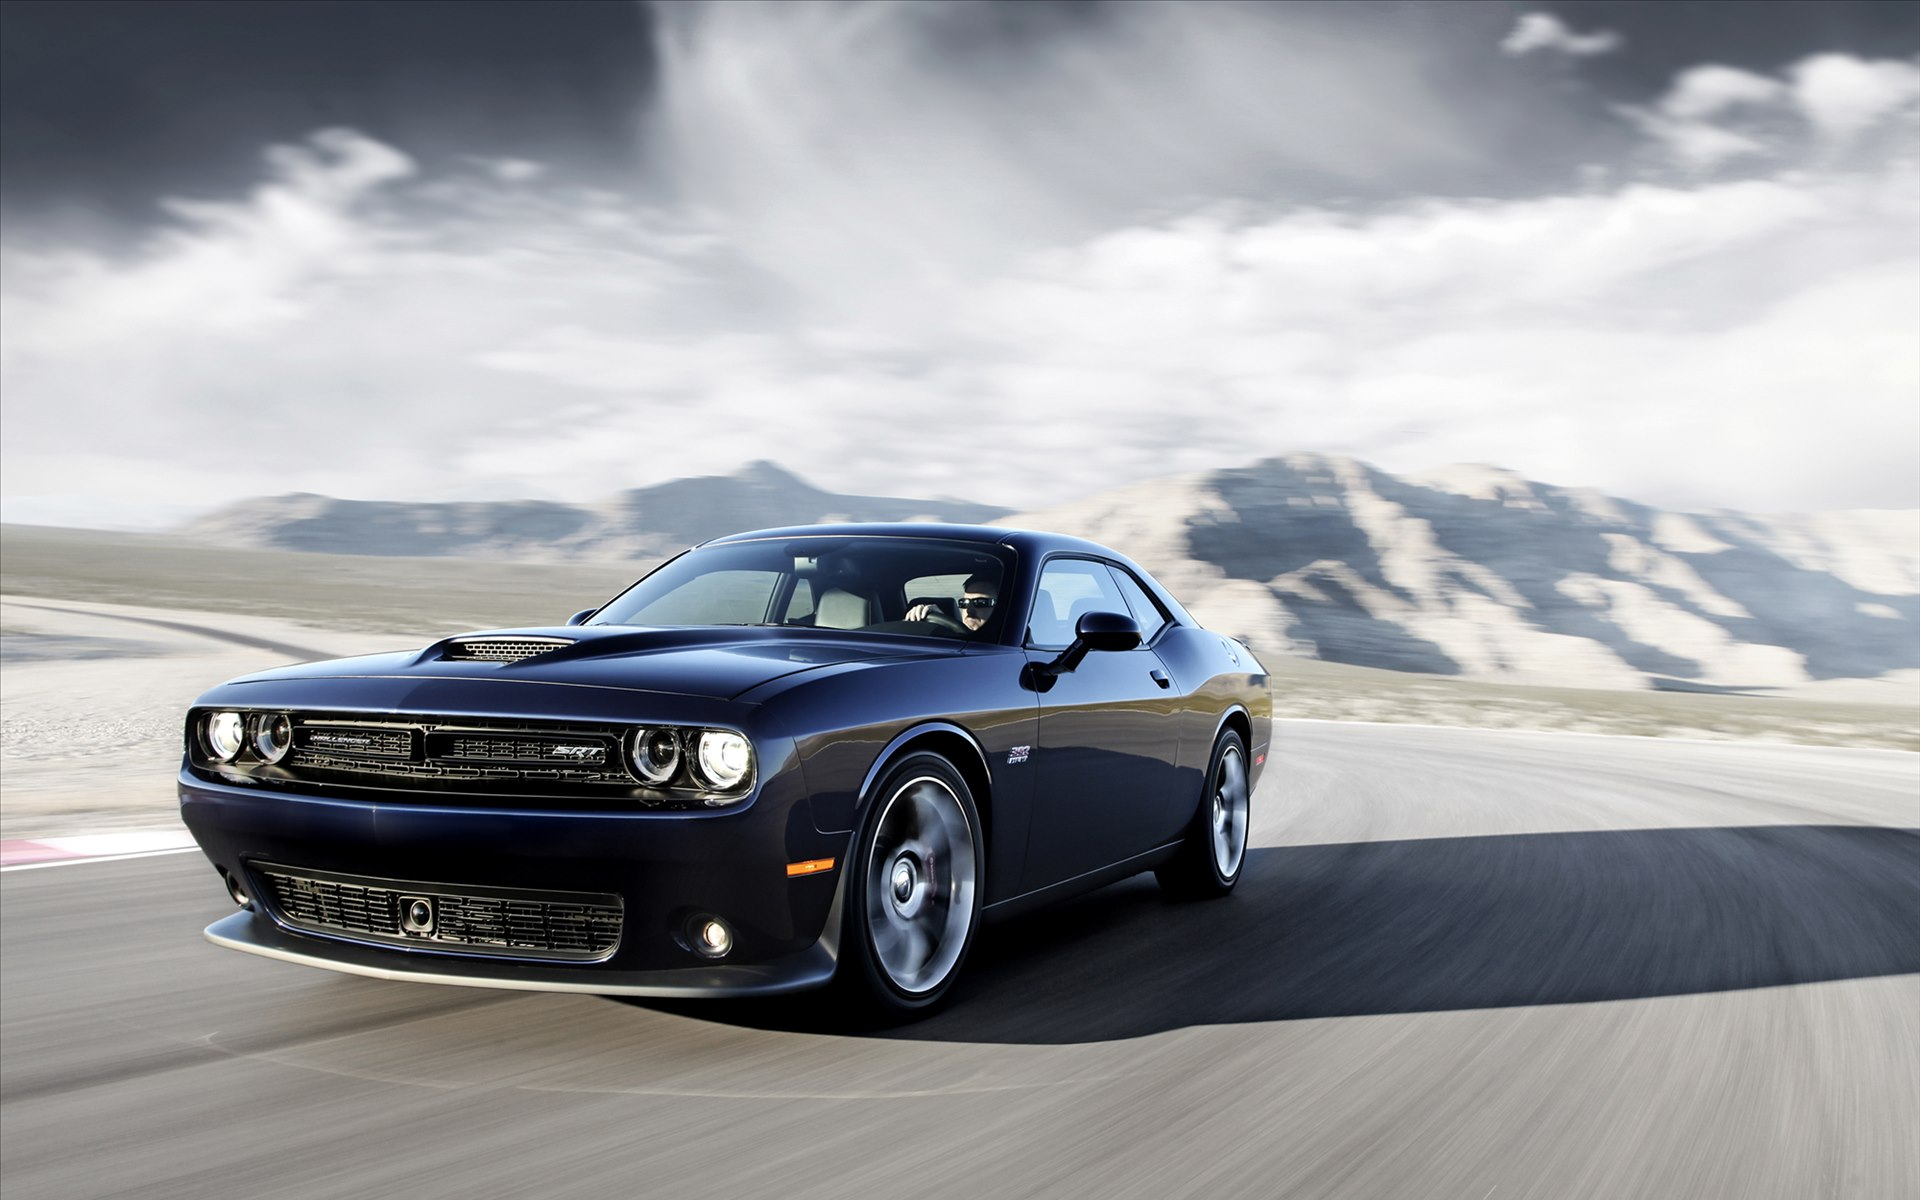 2015 Dodge Challenger SRT 3 Wallpaper HD Car Wallpapers 1920x1200